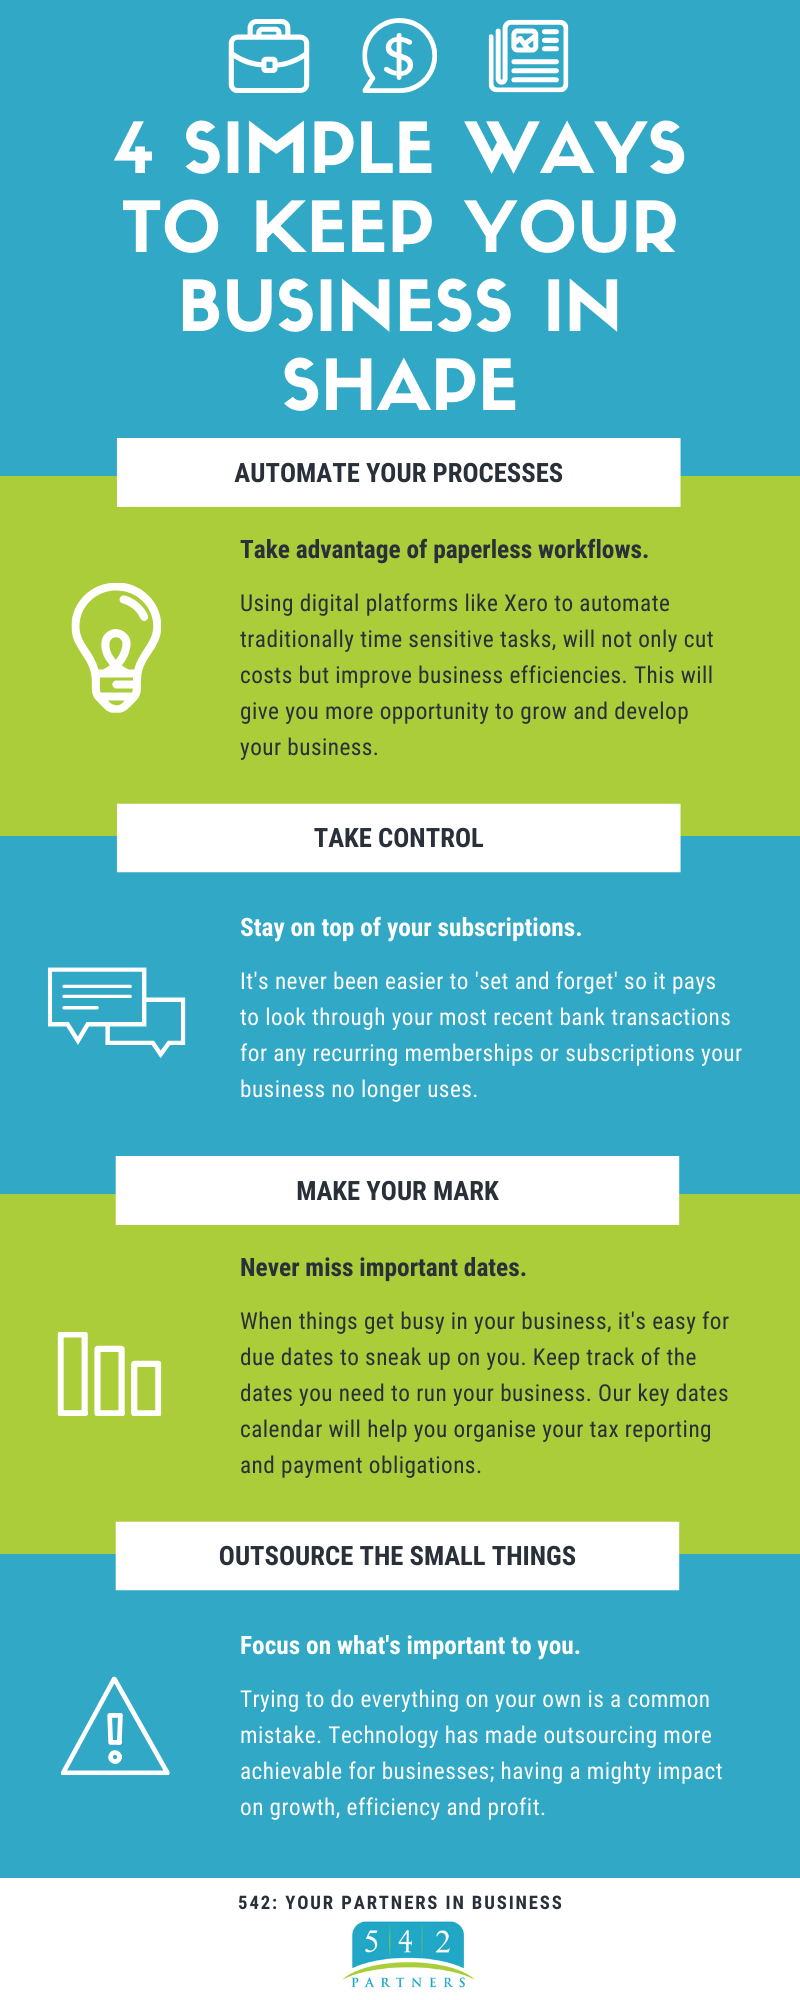 4 simple ways to keep your business in shape